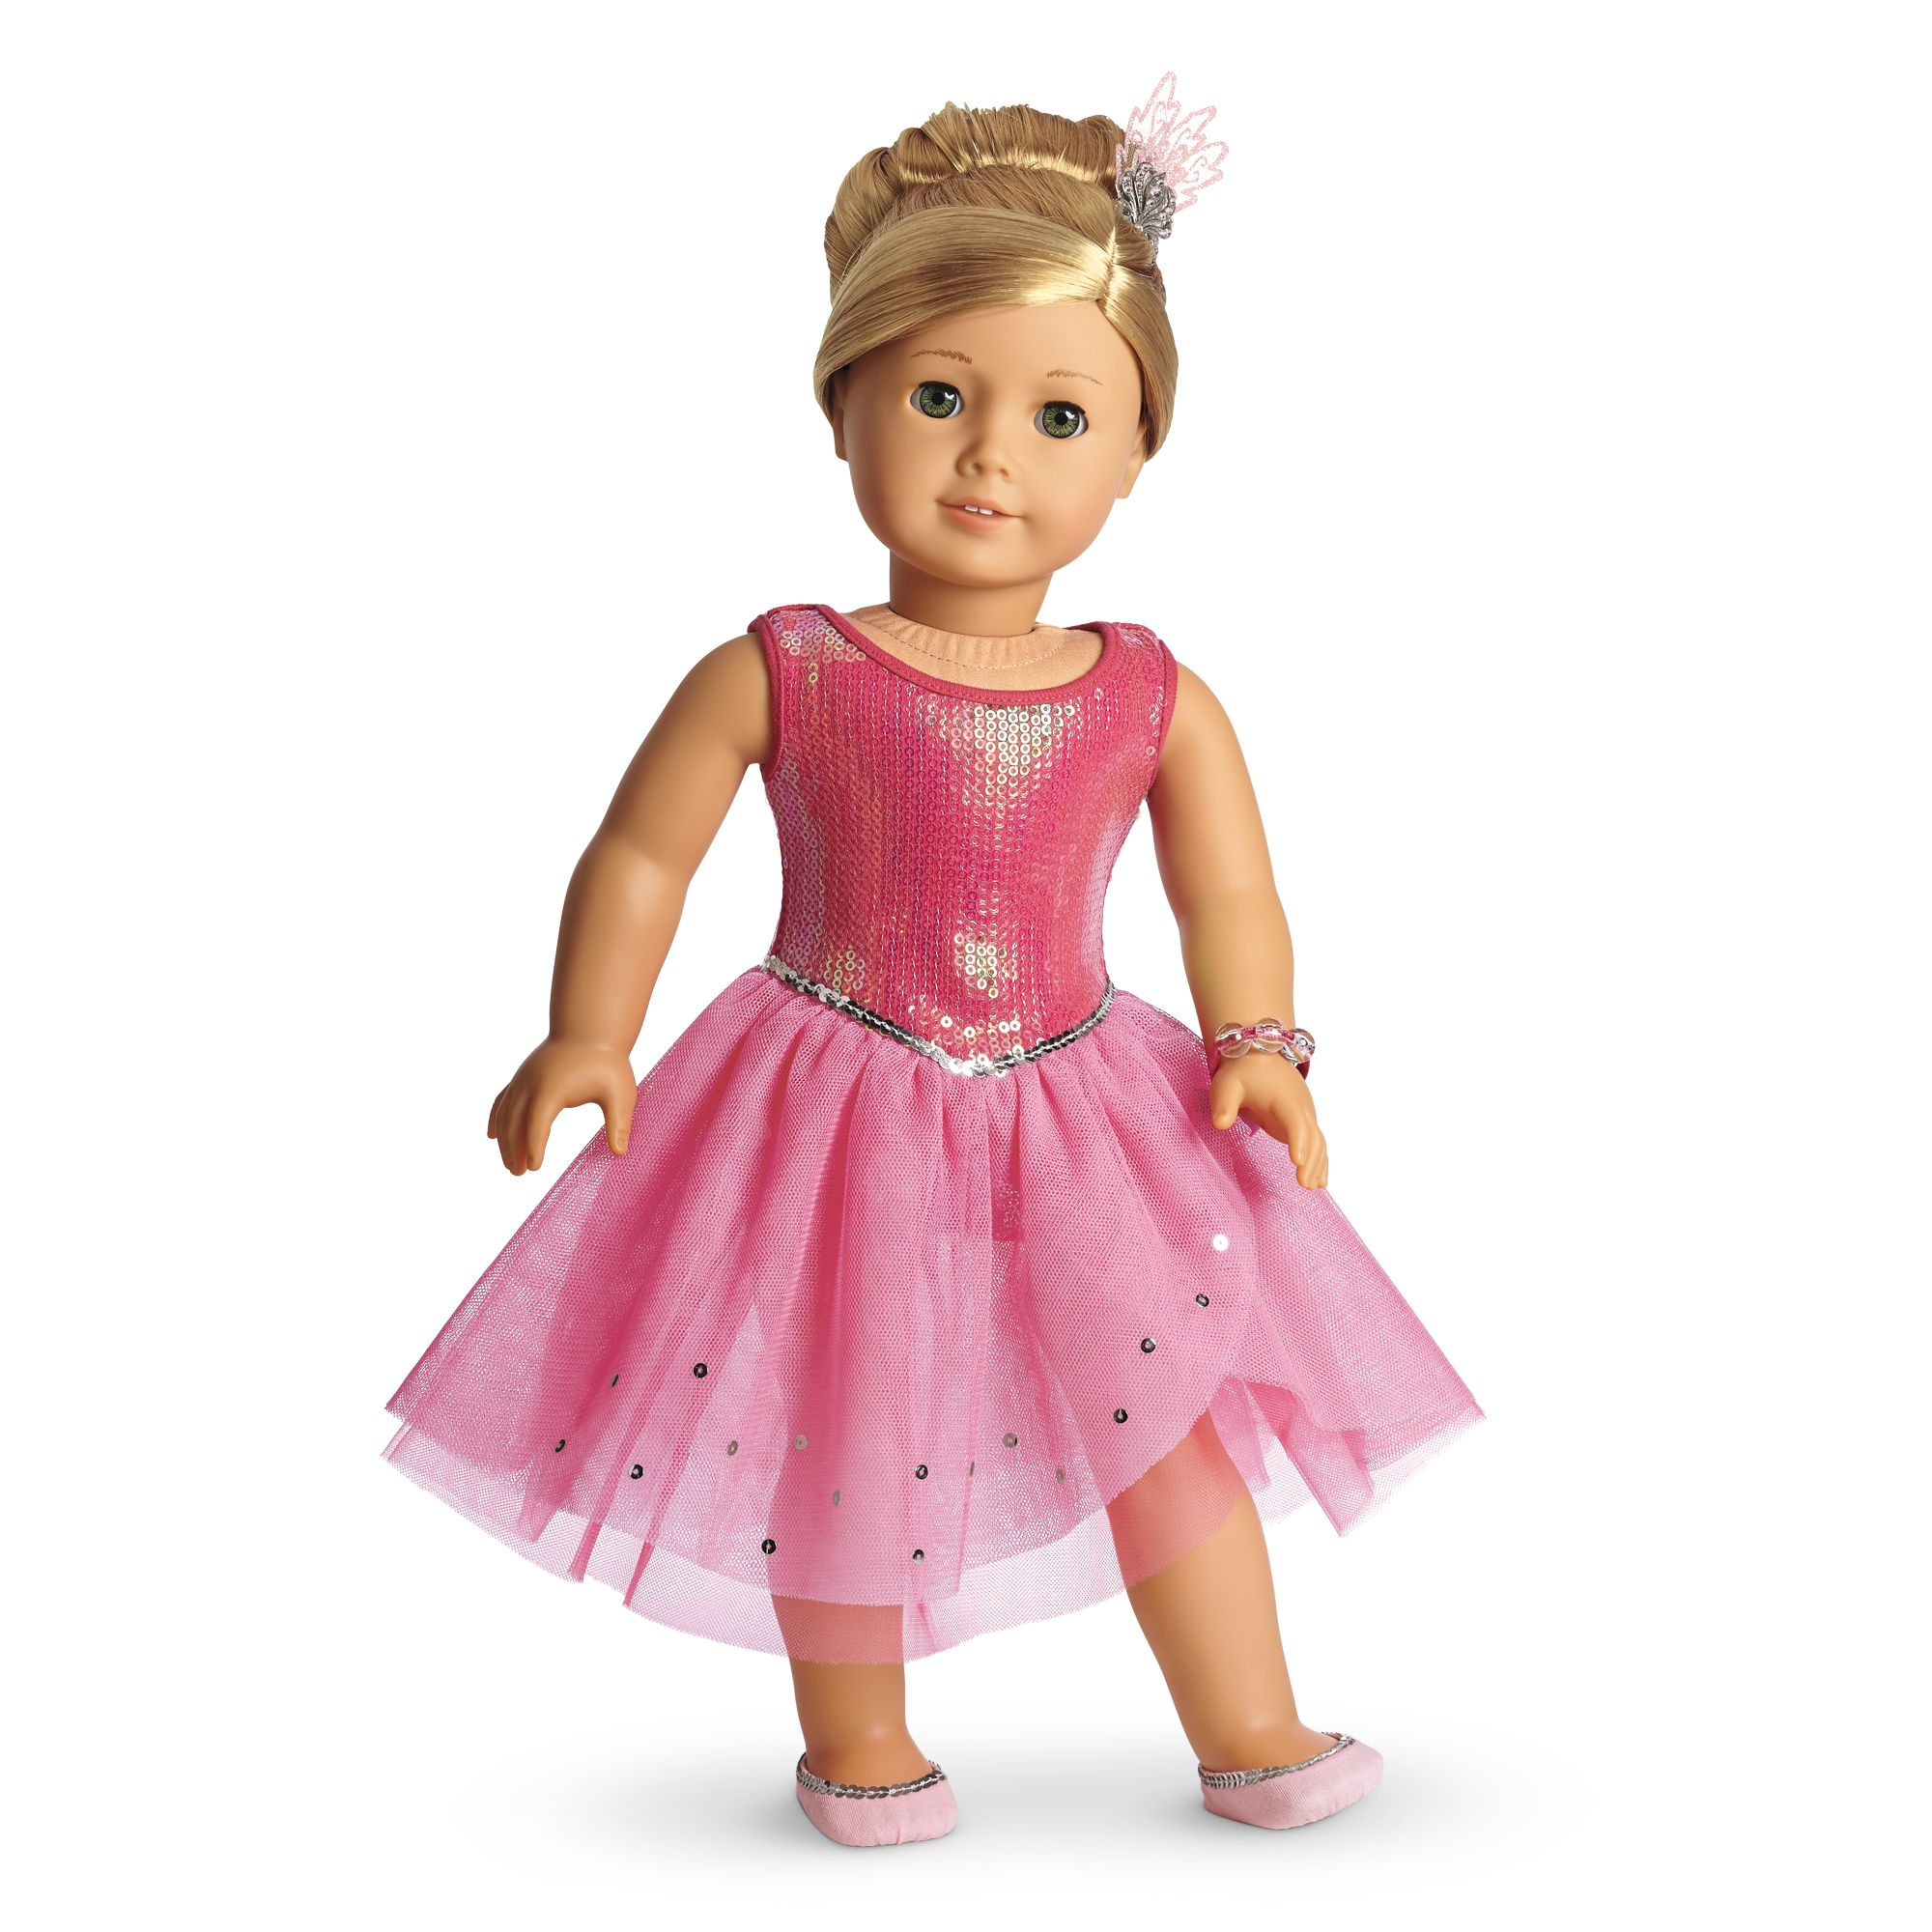 Emmy s American Girl Doll Whispers My Top 10 Favorite American